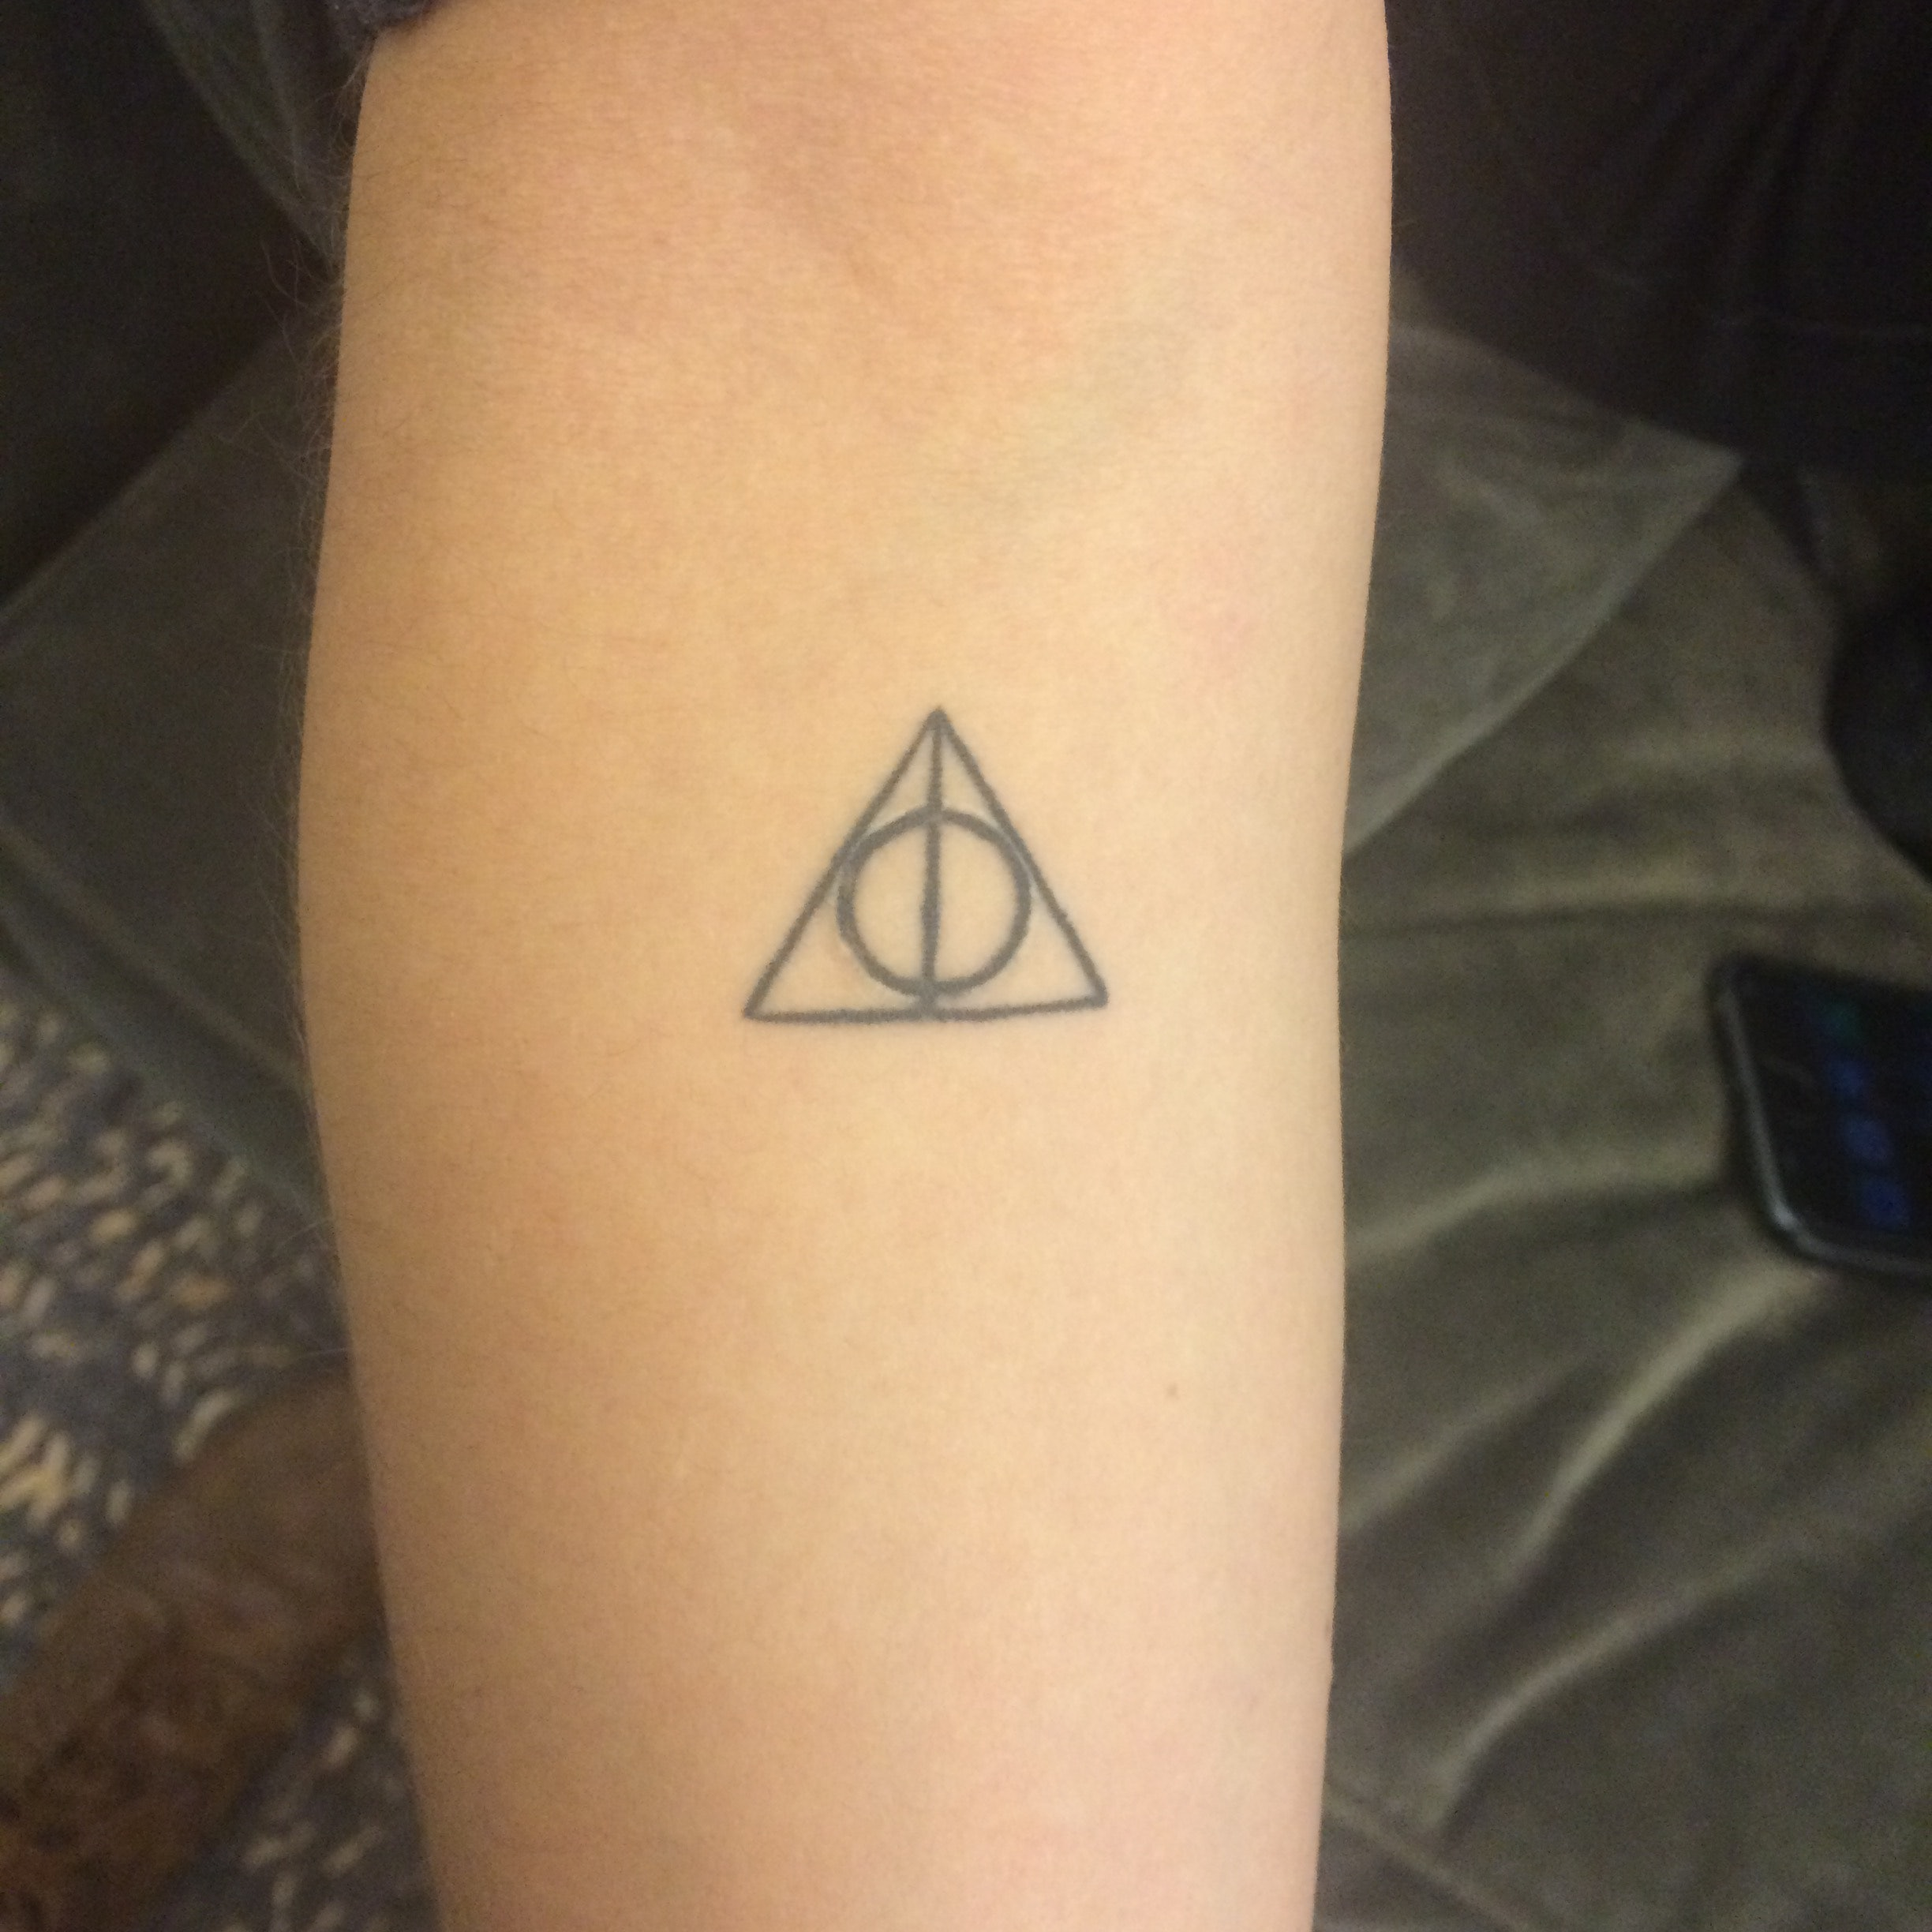 11 Classy Harry Potter Tattoos To Get With Your Bff So The Muggles